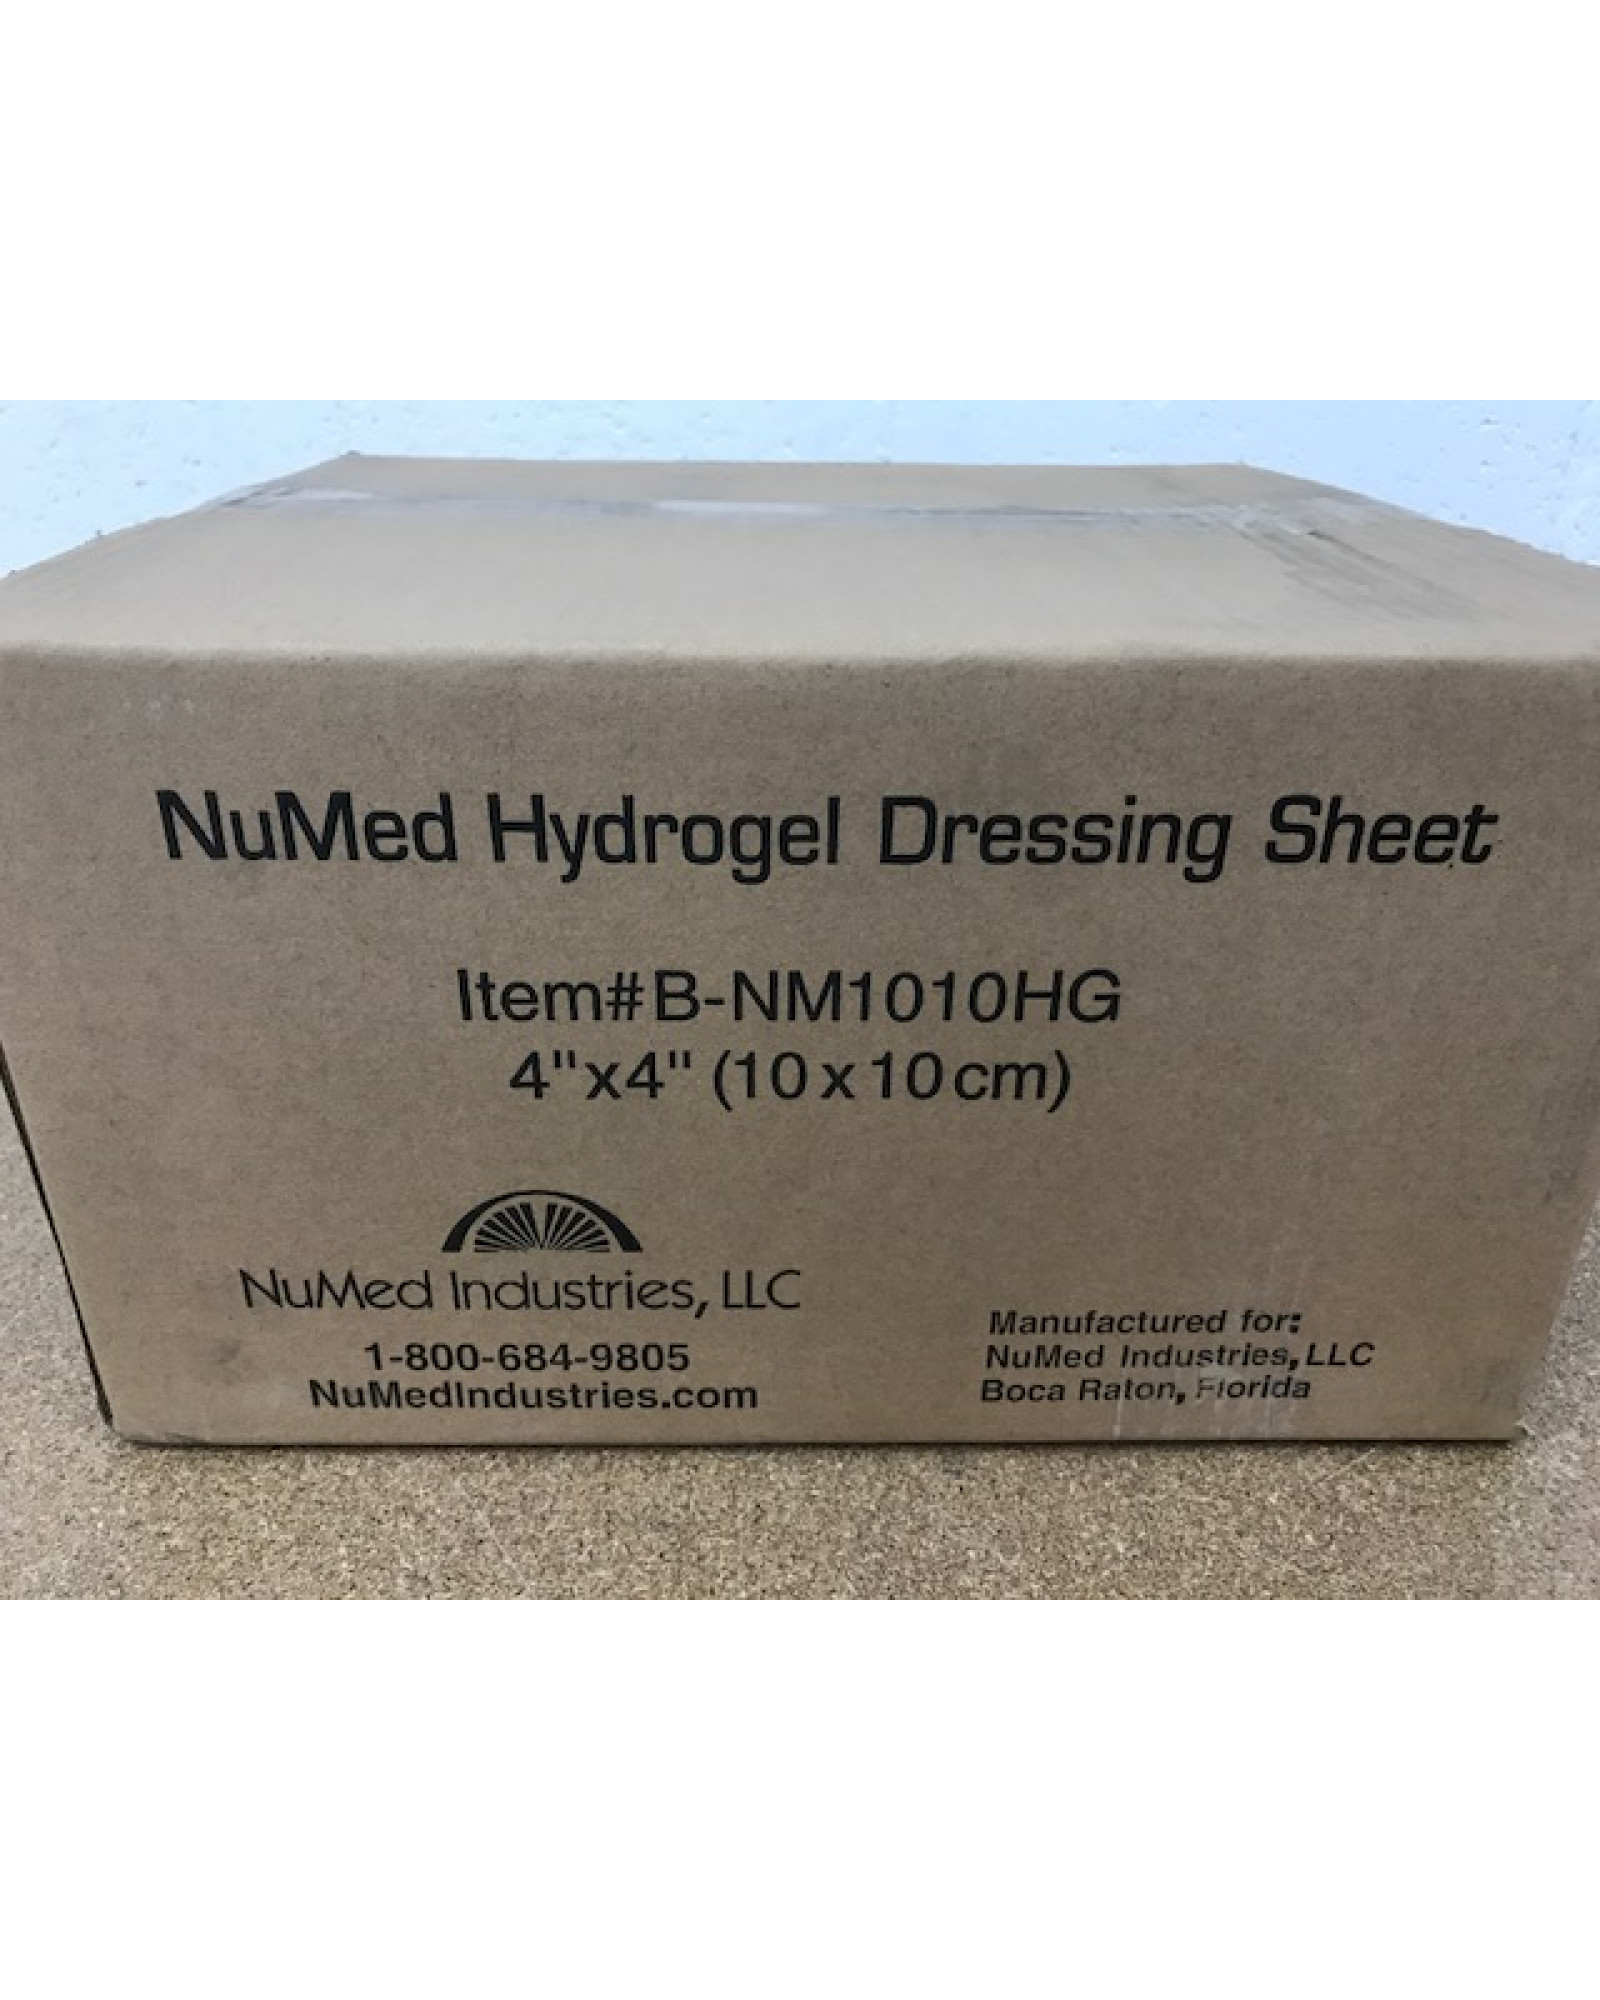 NuMed Hydrogel Dressing-Bulk Packaged